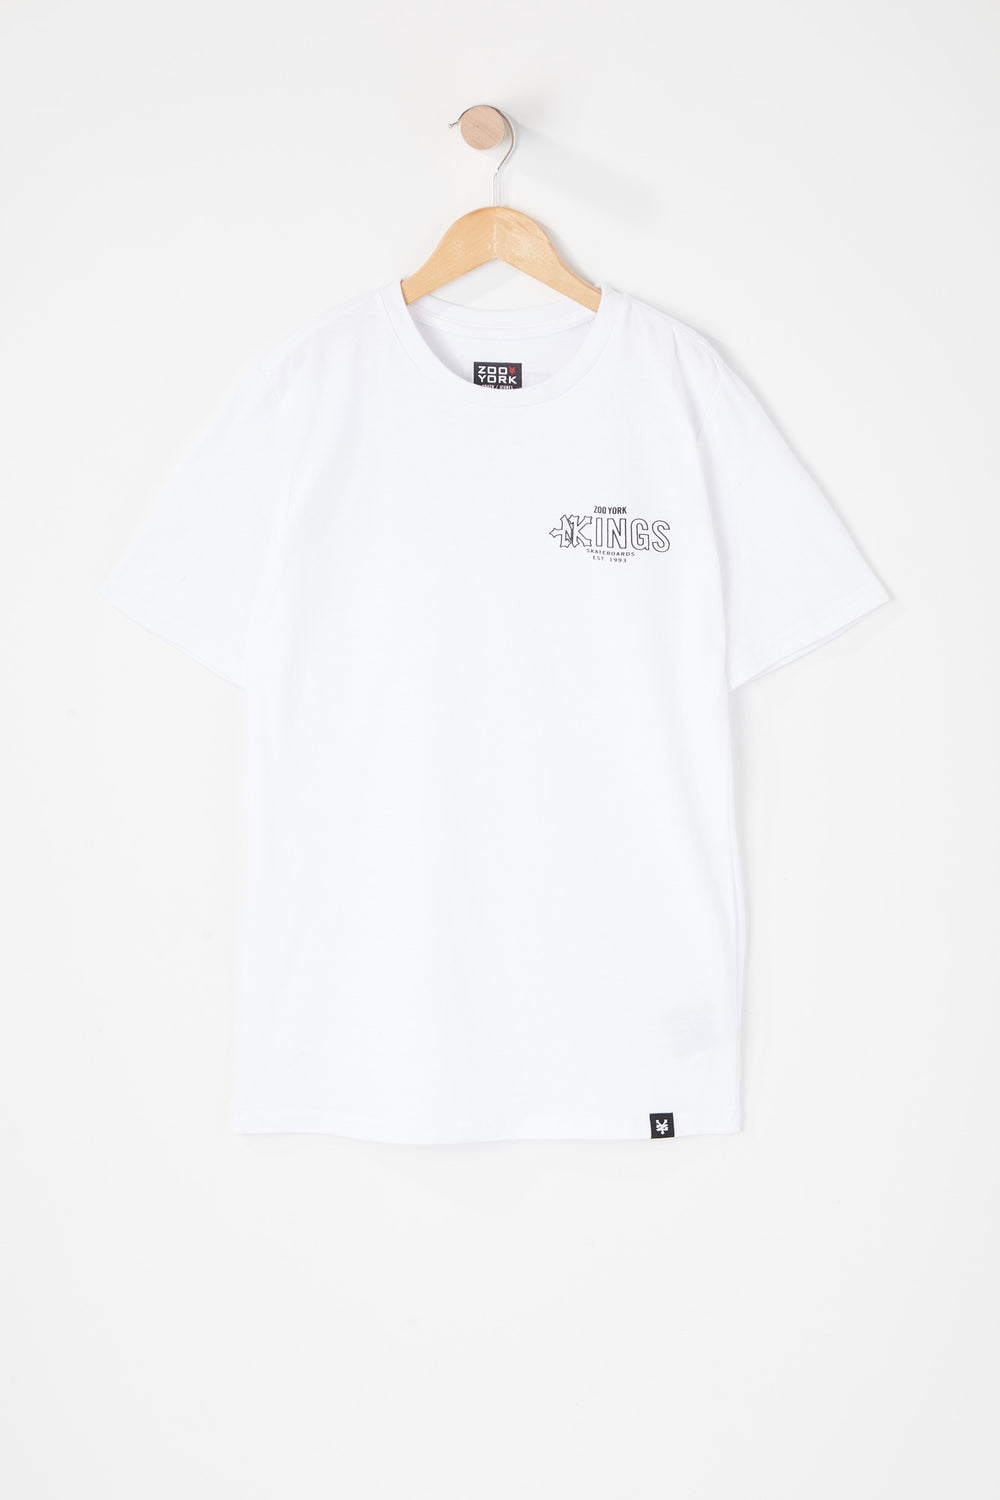 Zoo York Youth Kings T-Shirt White